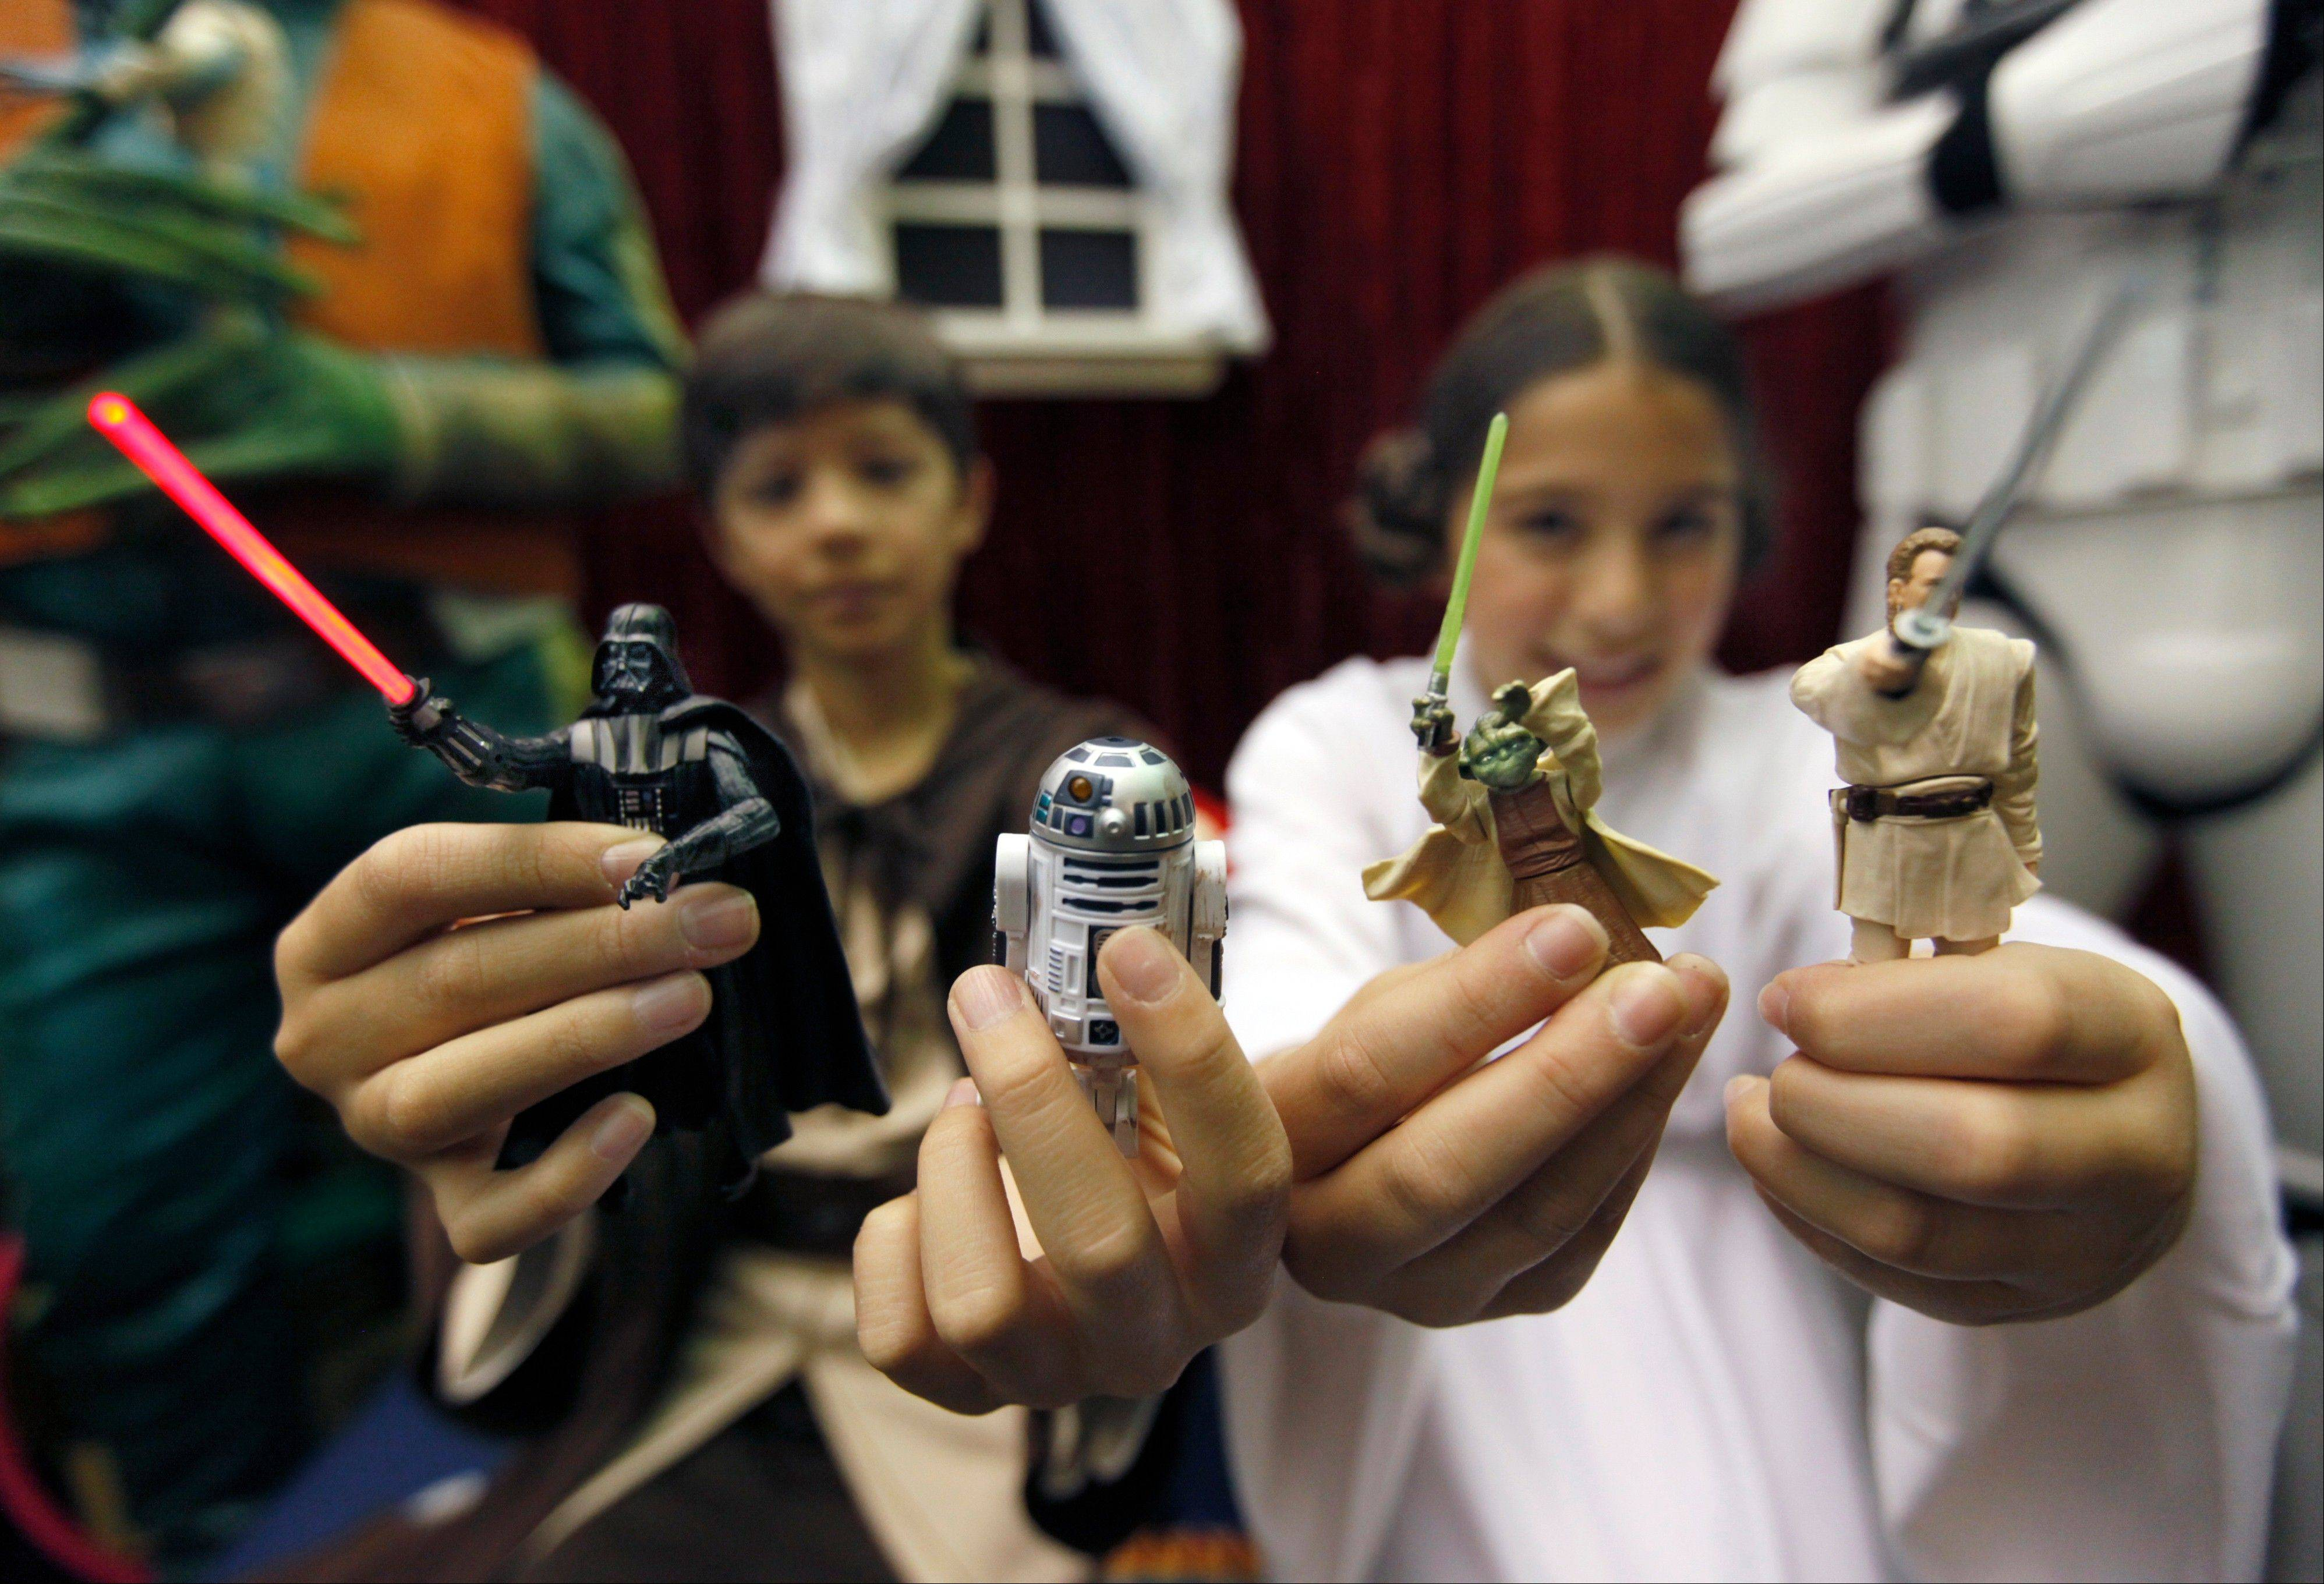 Chase Boss, left, 11, as Luke Skywalker and his twin sister Sydney as Princess Leia hold Star Wars action figures, which were inducted into the National Toy Hall of Fame at The Strong in Rochester, N.Y., Thursday.